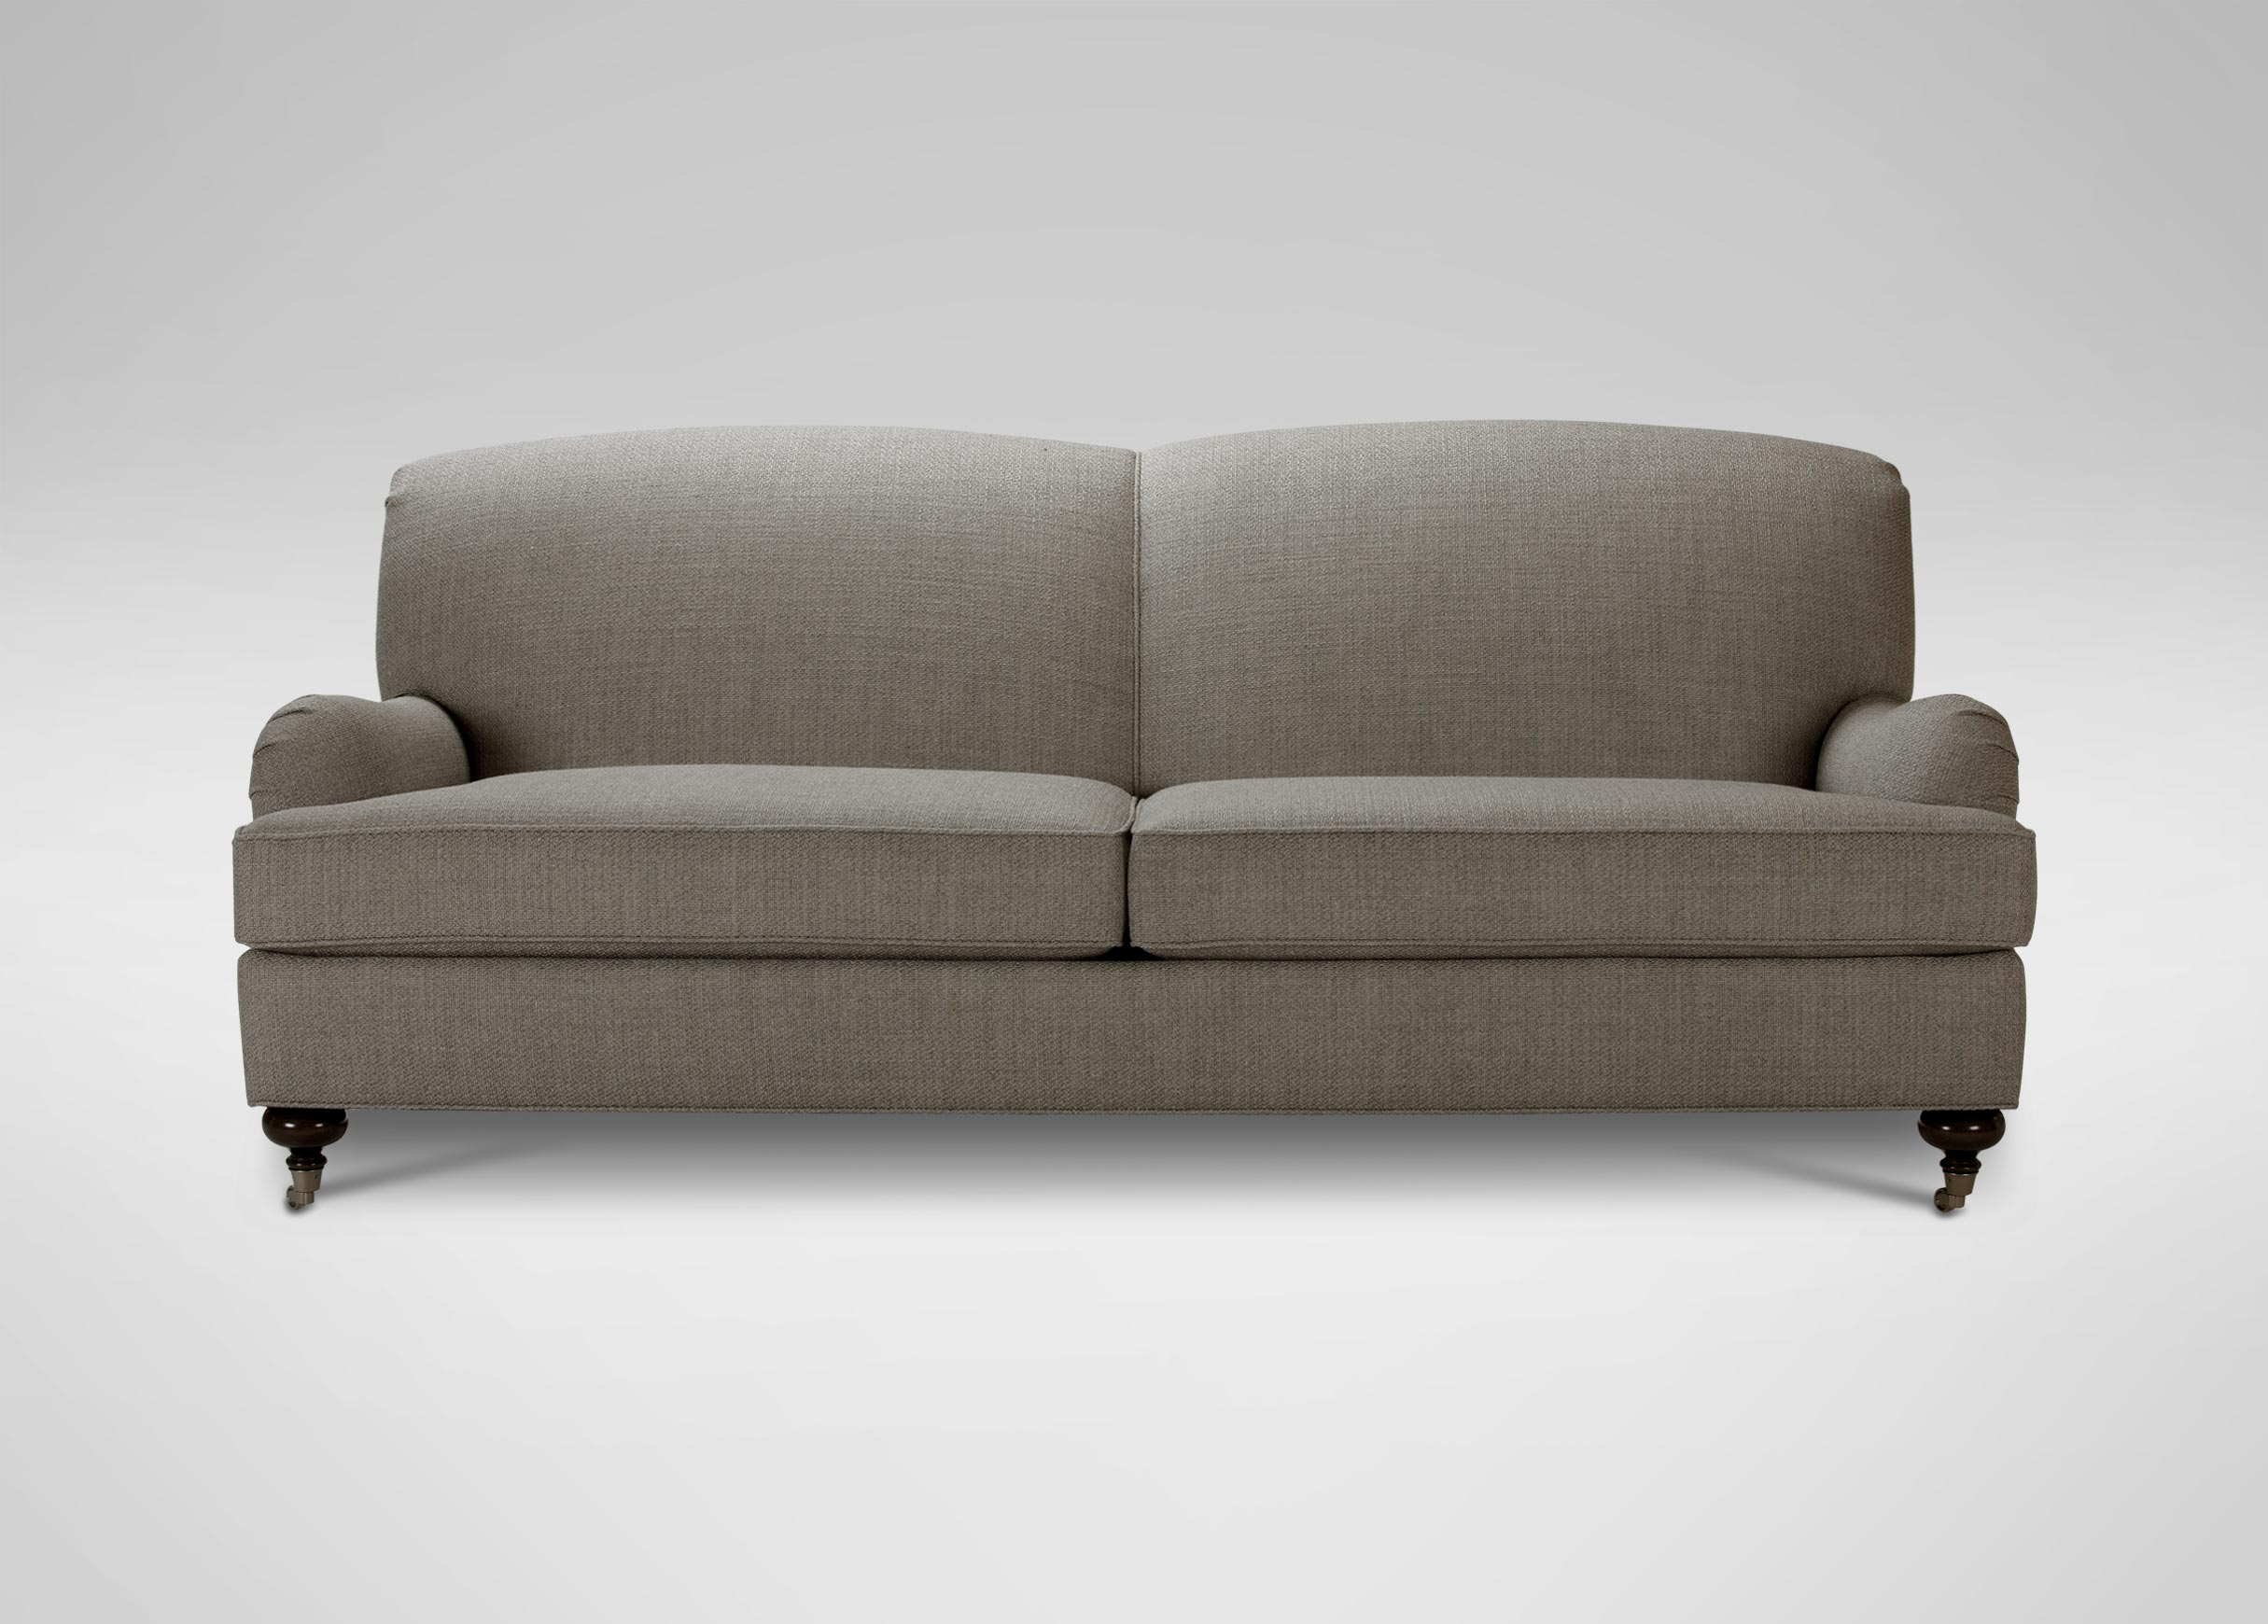 Trend Ethan Allen Sleeper Sofa 75 In Sofas and Couches Set with Ethan Allen Sleeper Sofa